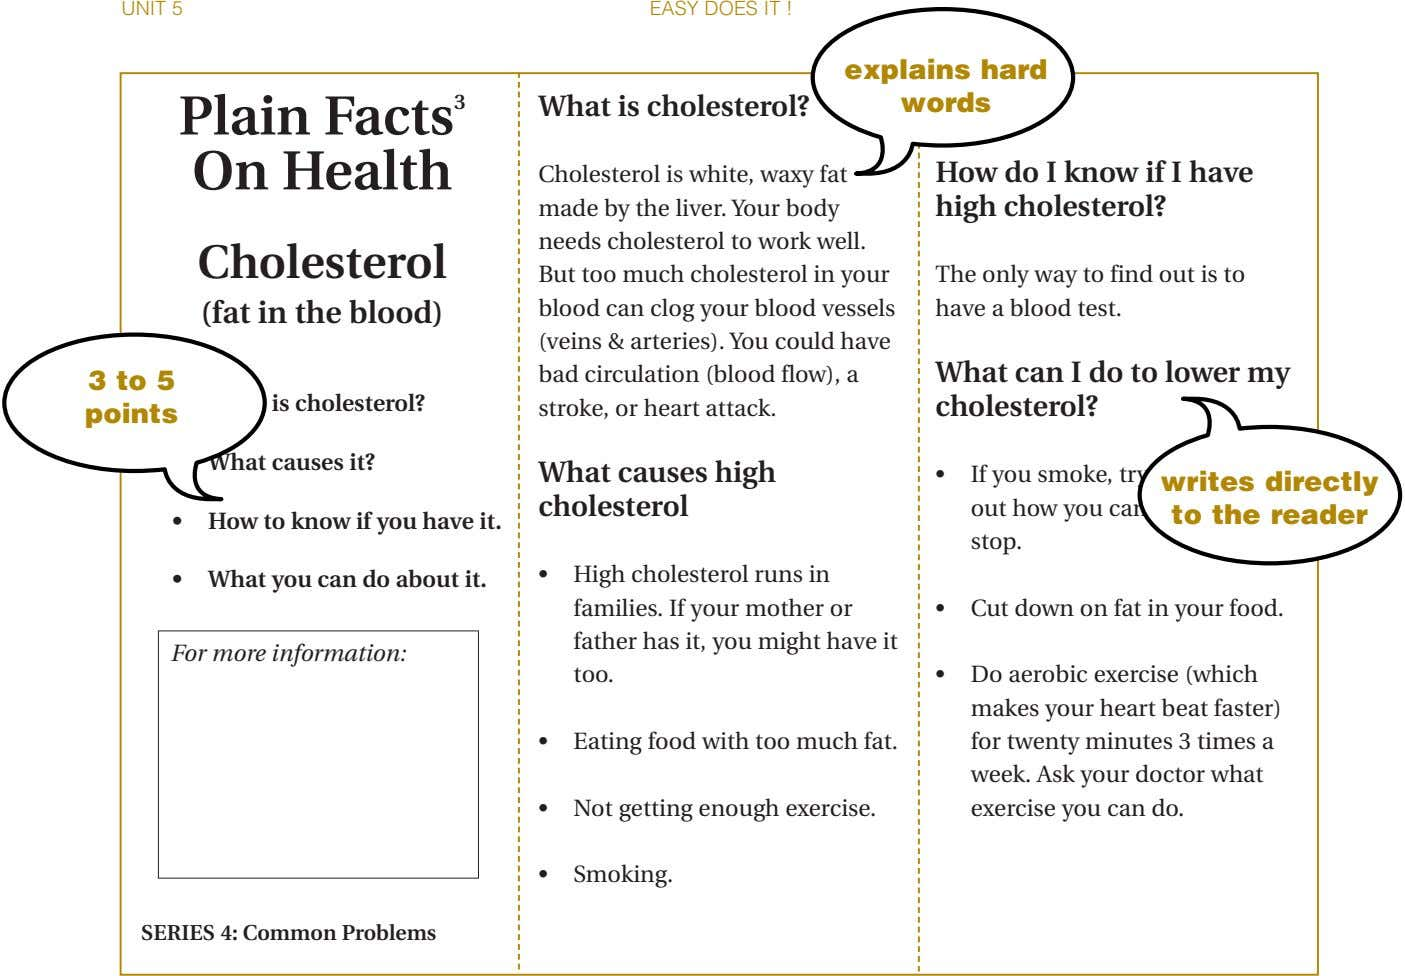 UNIT 5 EASY DOES IT ! explains hard words Plain Facts 3 On Health What is